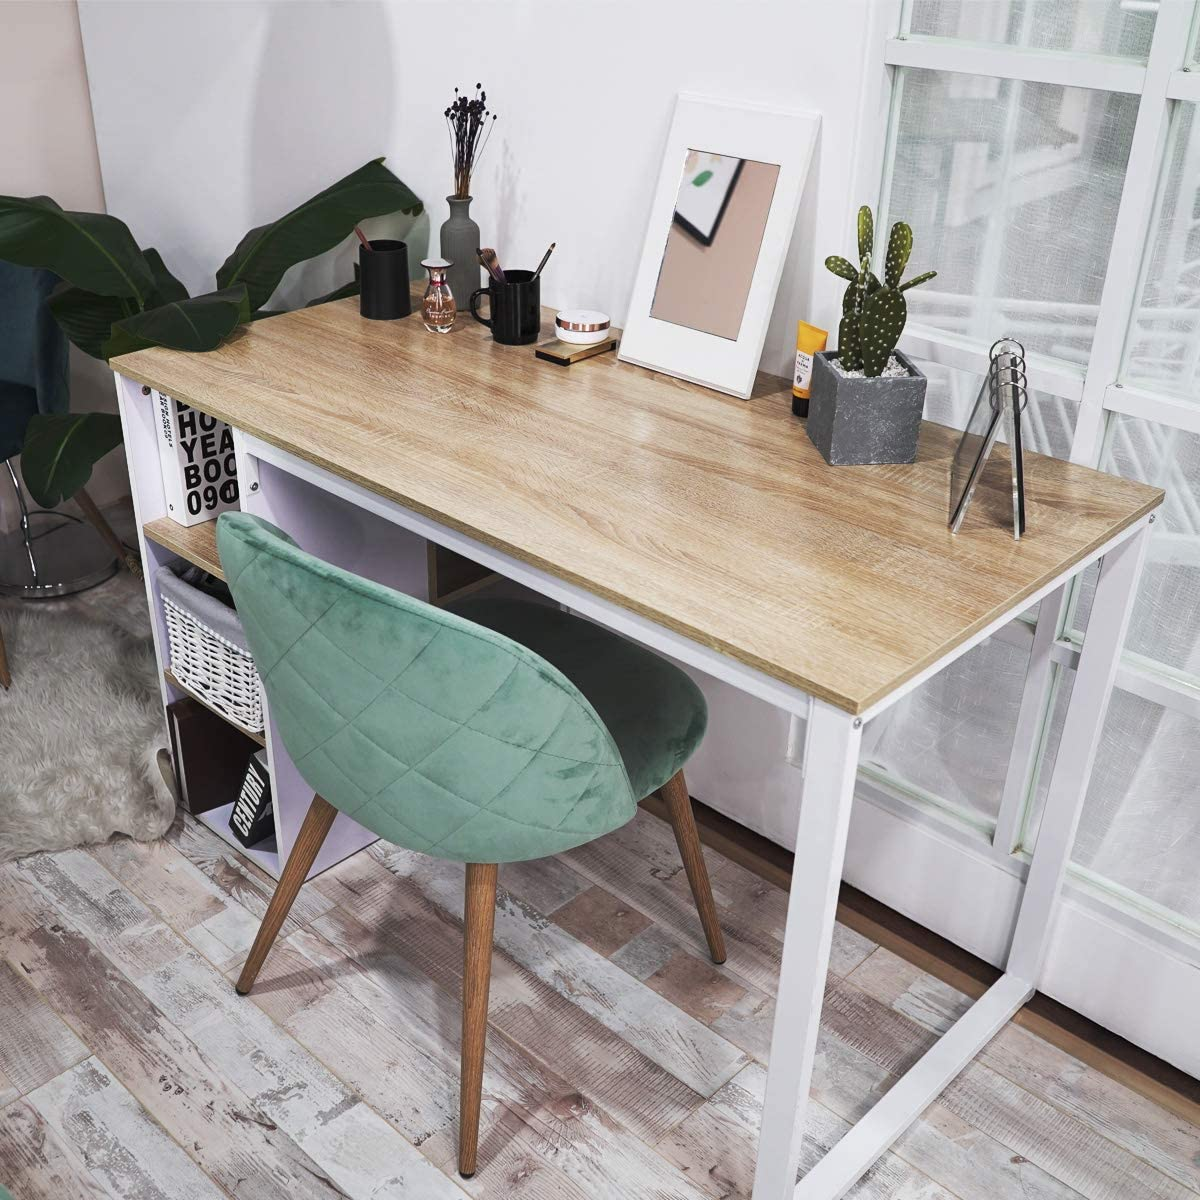 The 5 Best Desks with Storage (2021 Review)